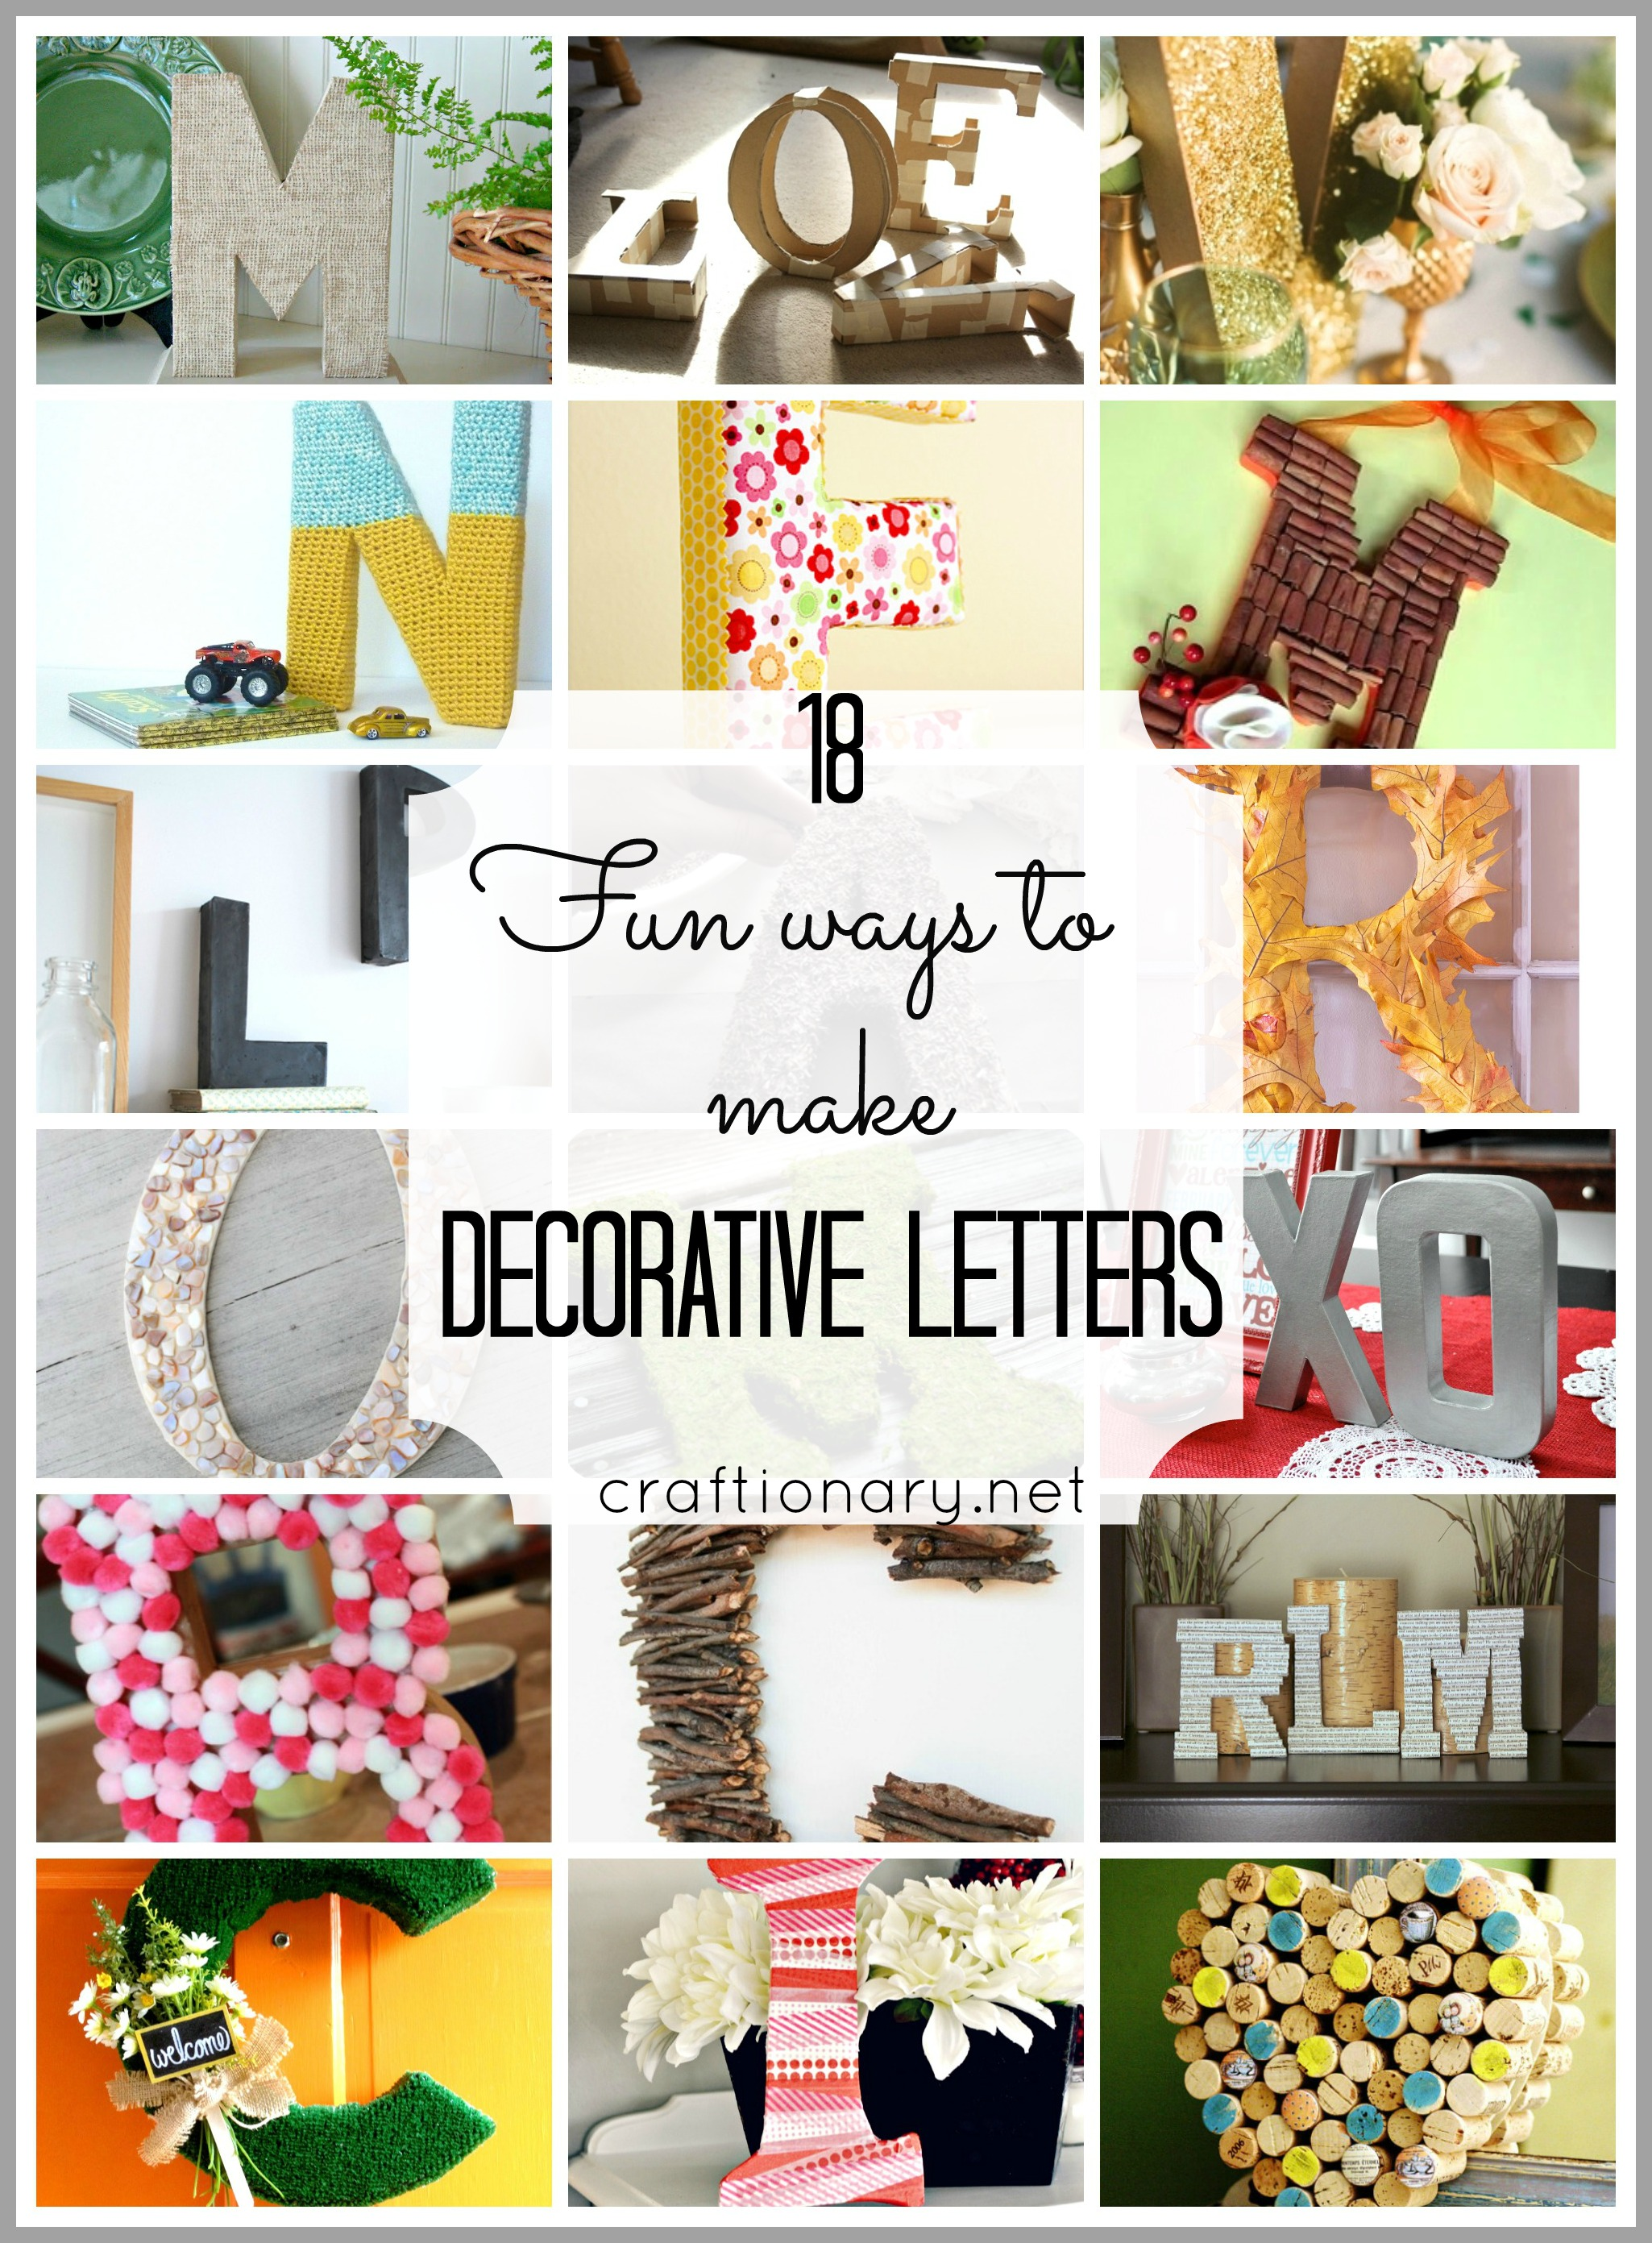 Foam letters for crafts - Foam Letters For Crafts 18 Ways To Make Decorative Letters Easy And Creative Download